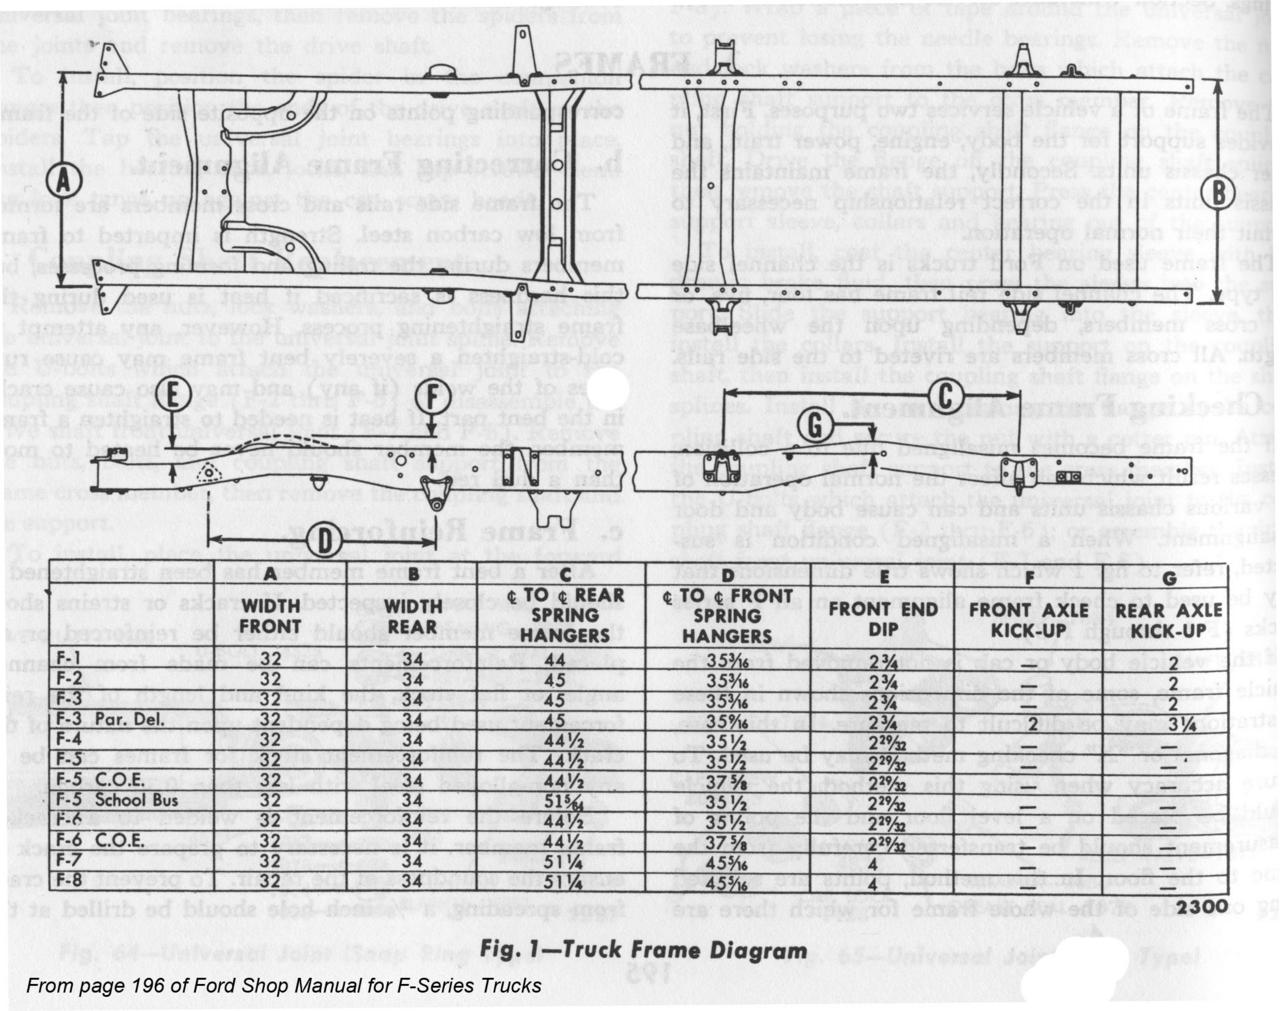 Photo 49 51 Chassis Dimensions 1951 Ford F1 Album